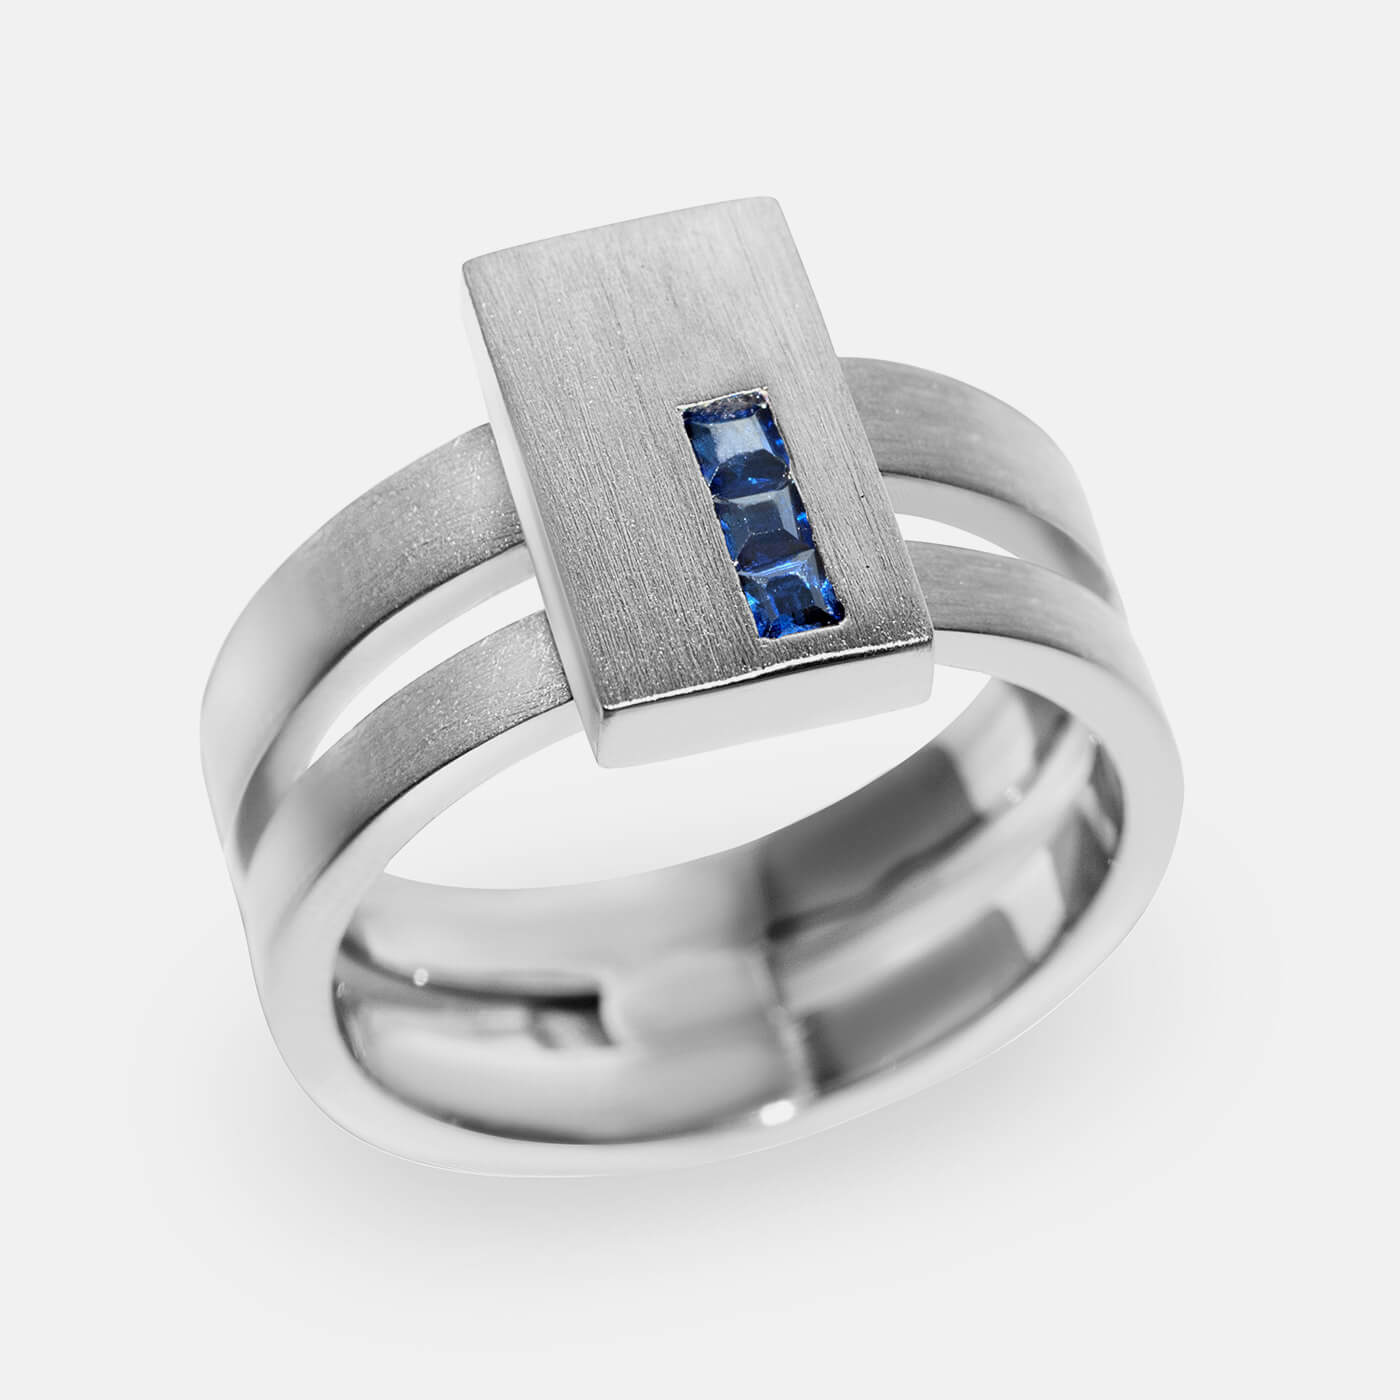 Architect progression 1 Engagement Ring